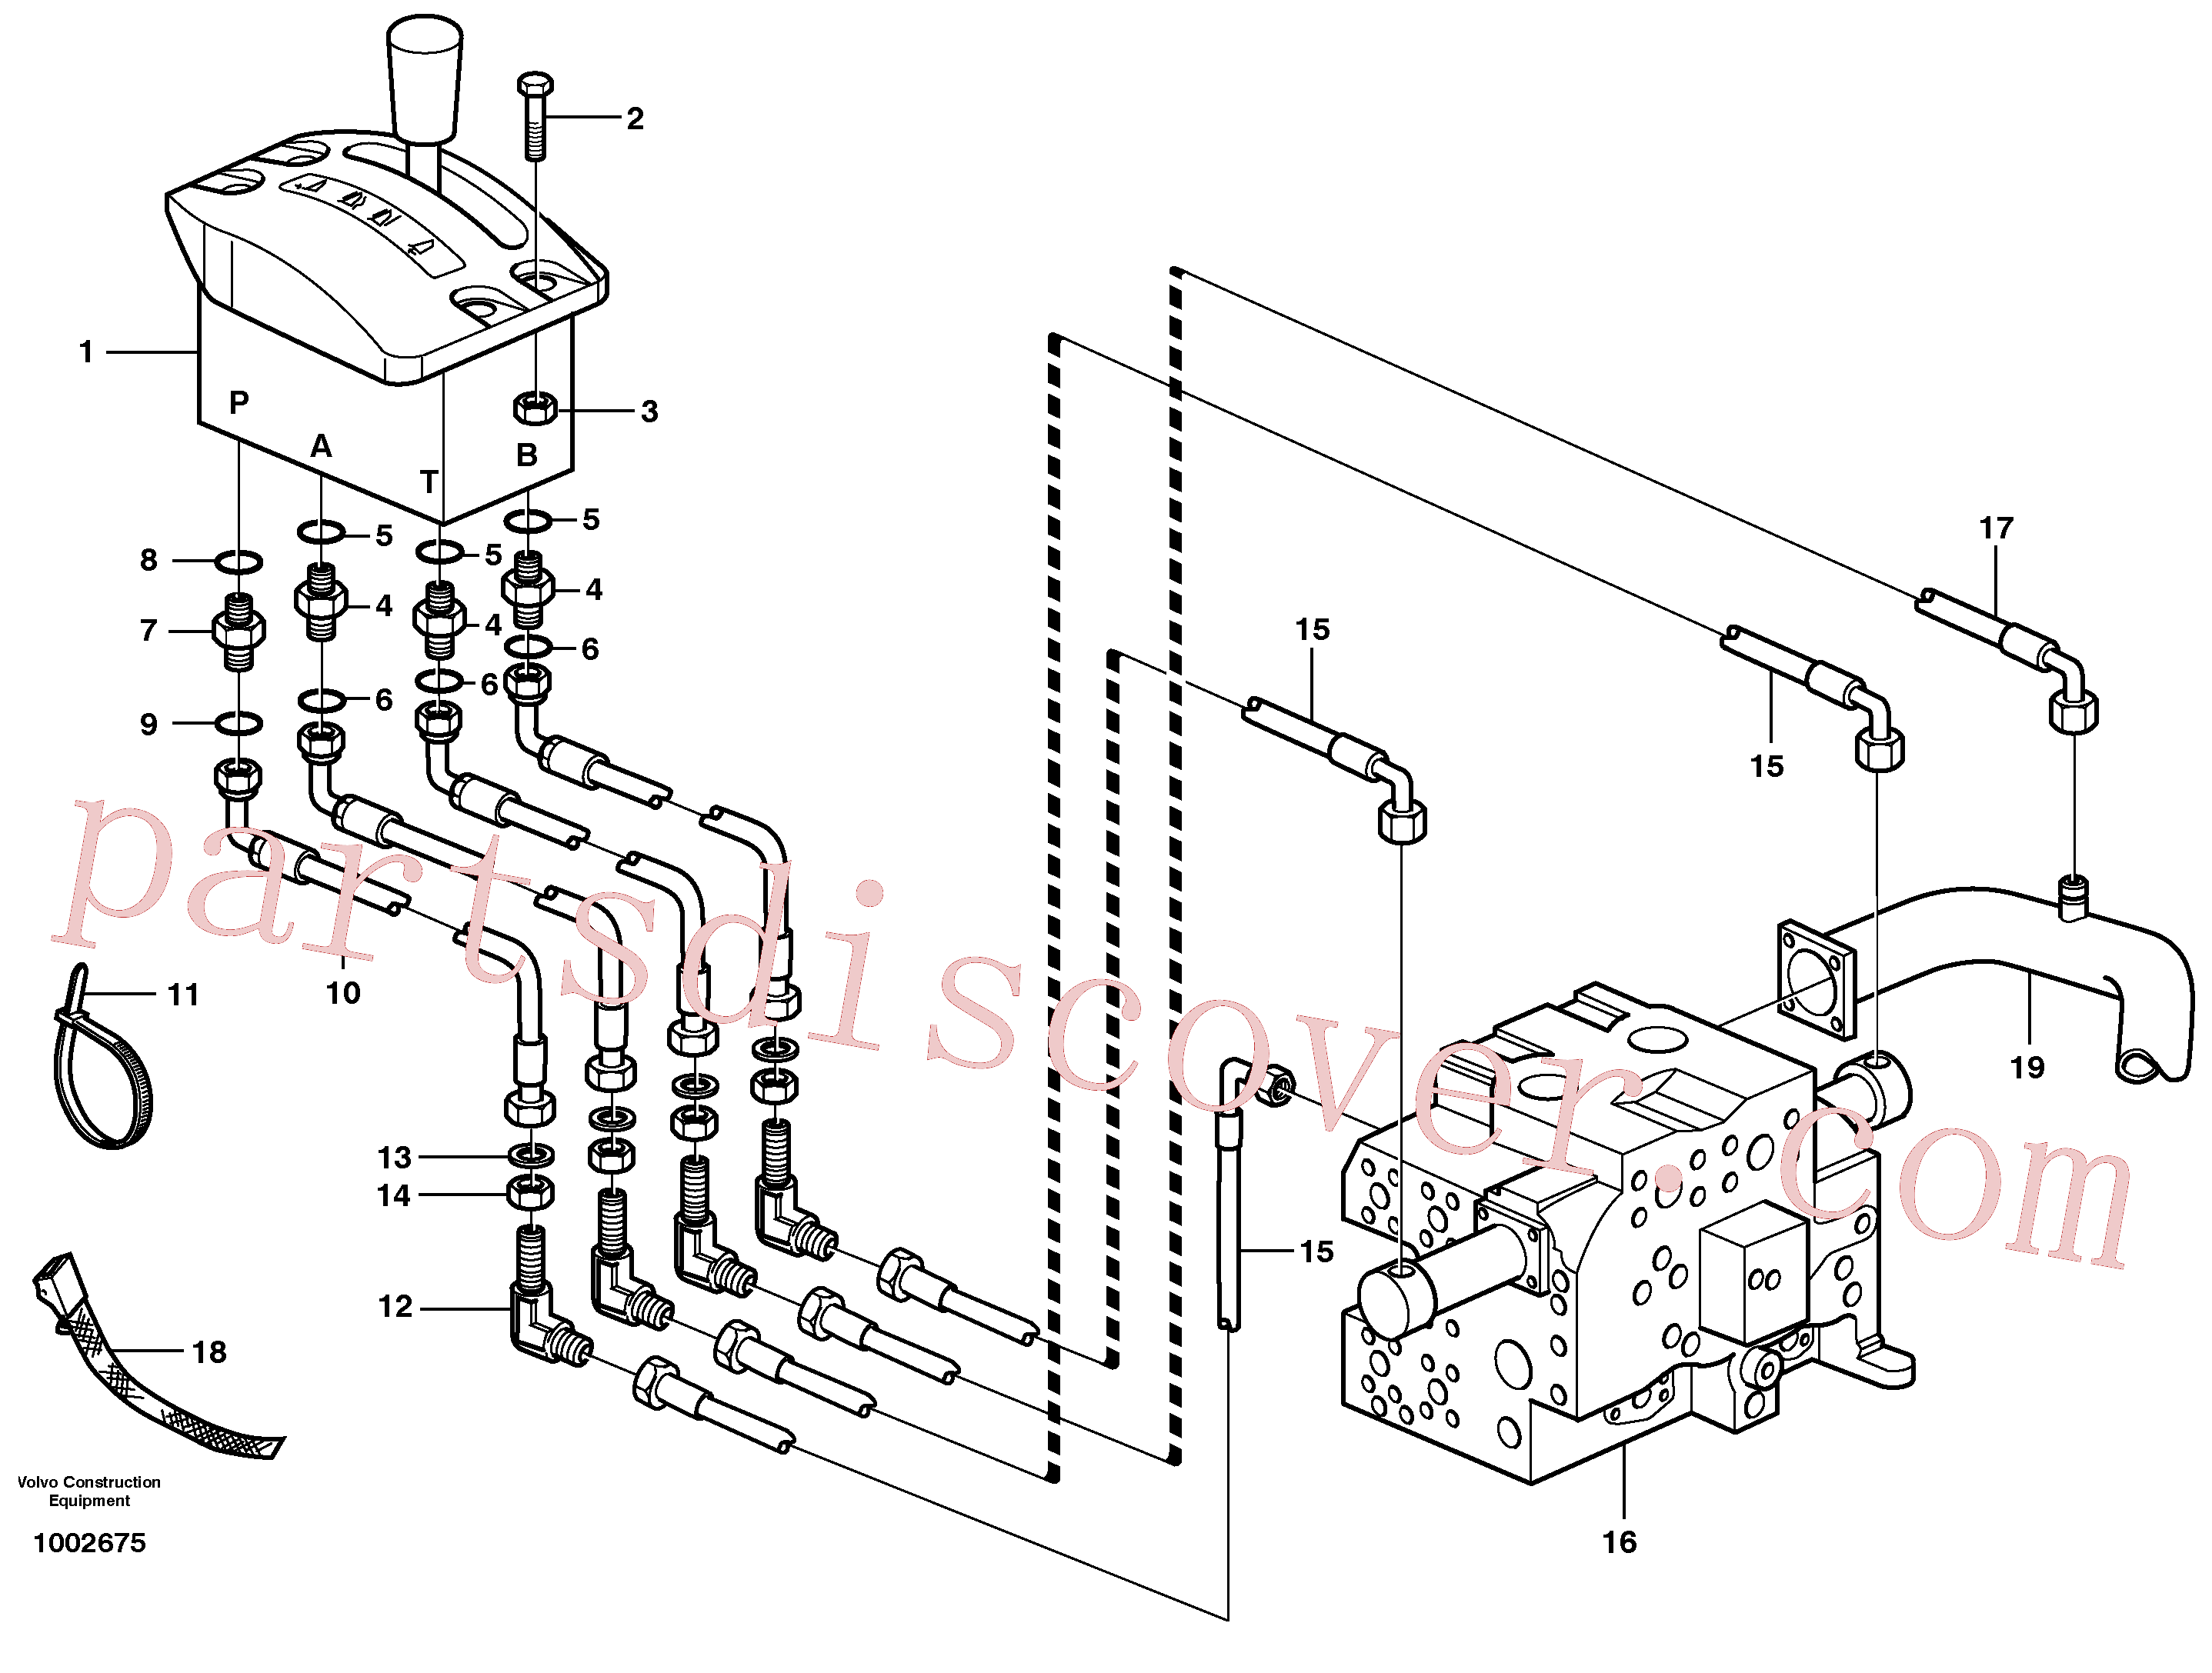 VOE14535689 for Volvo Servo system, tipper control(1002675 assembly)